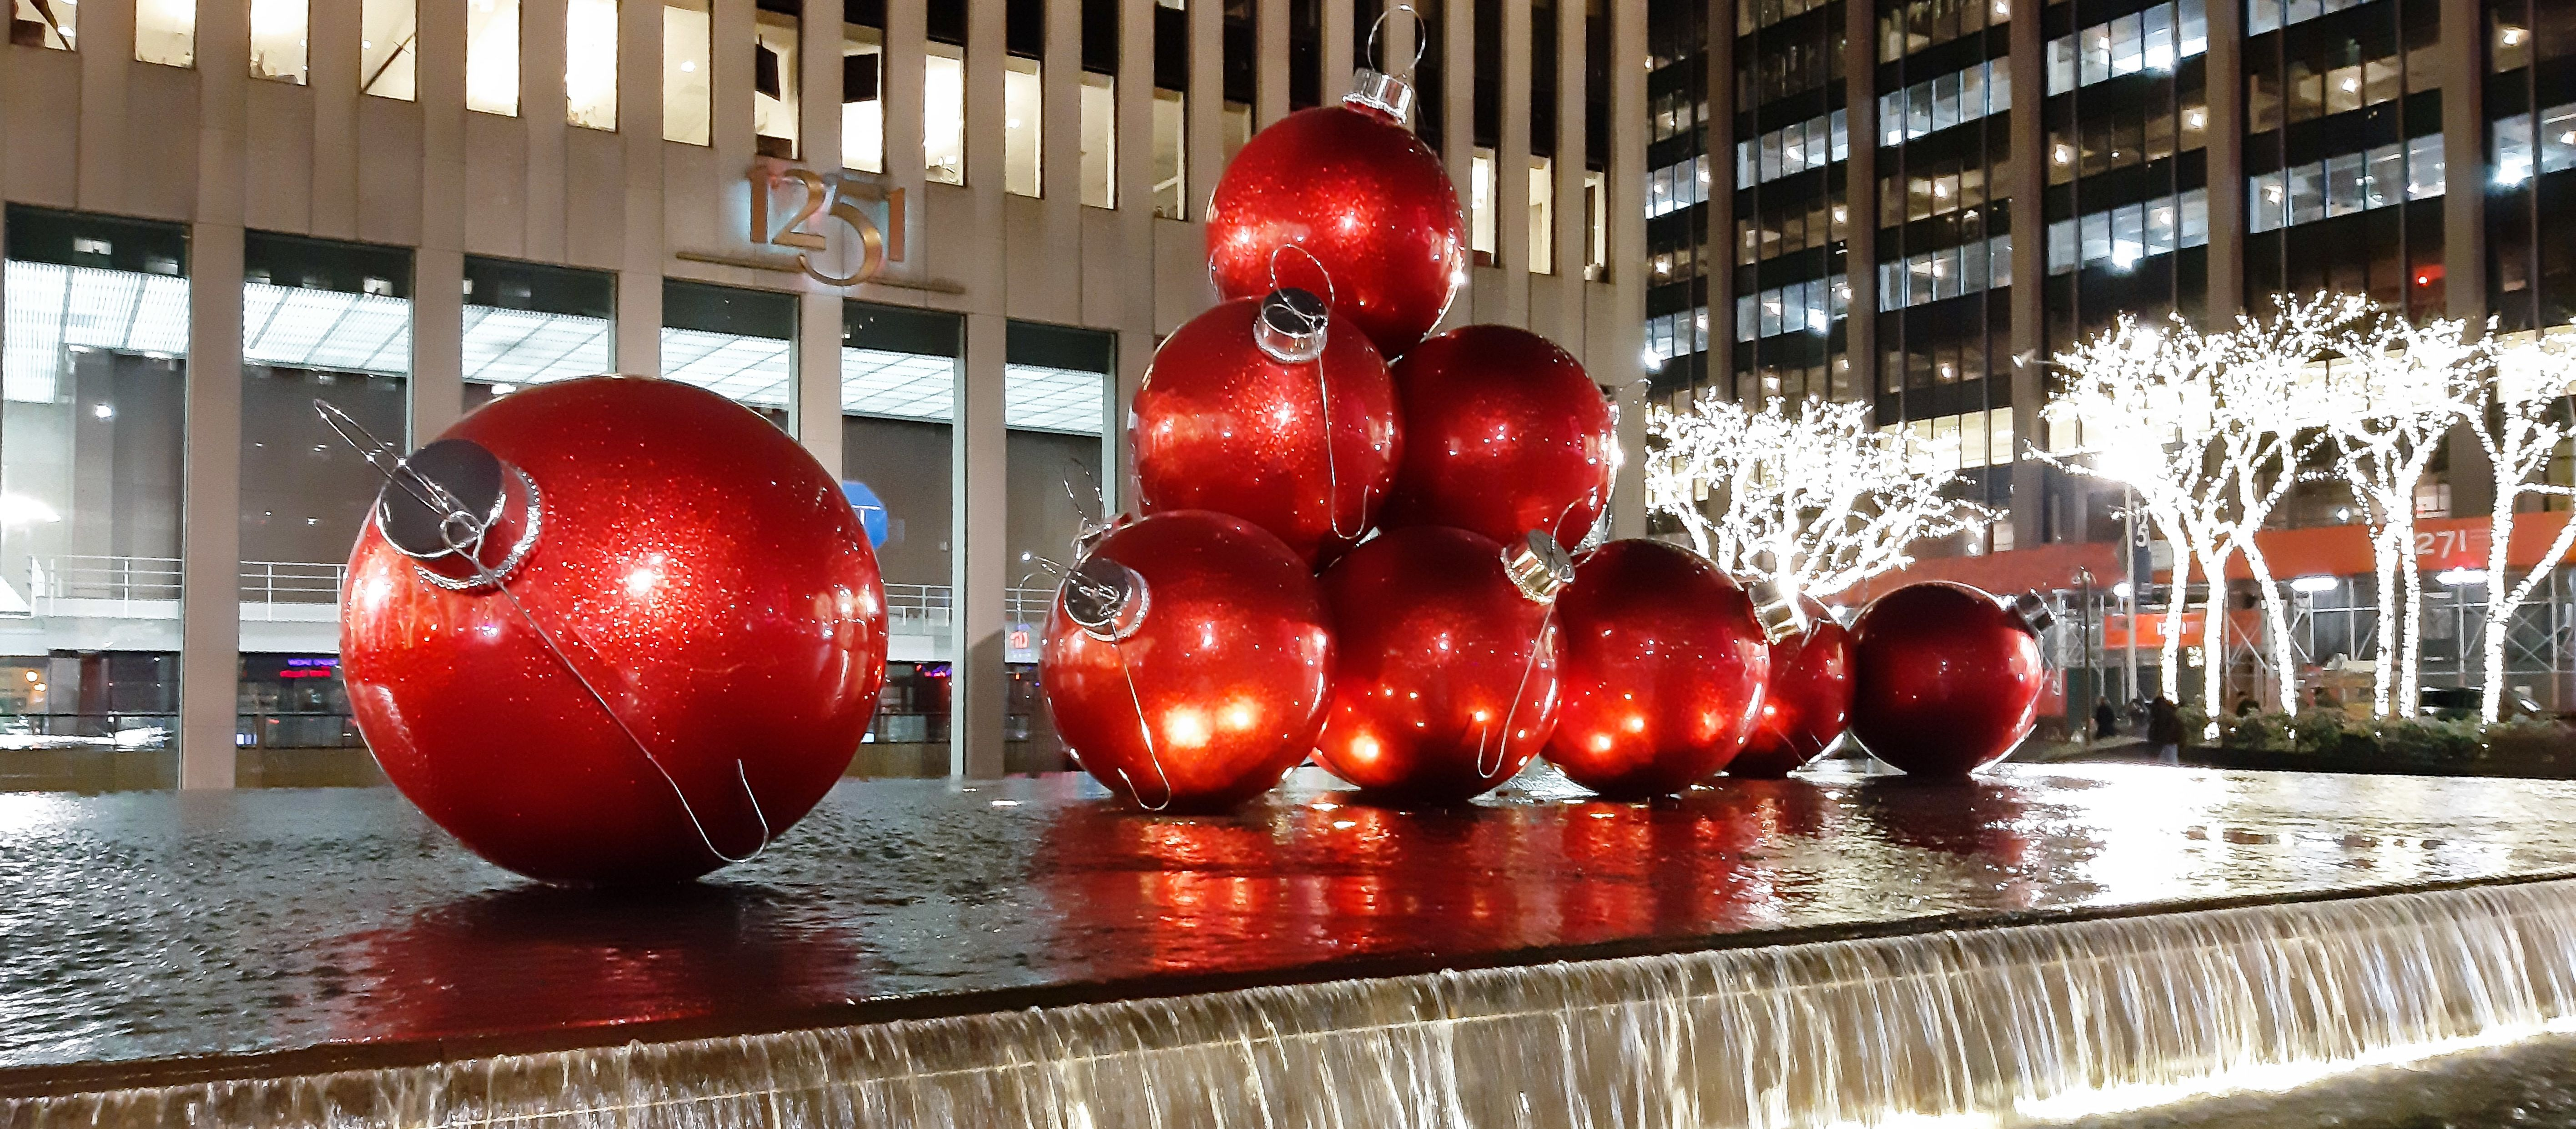 Weihnachtlich dekoriert in der 6th Avenue in New York City